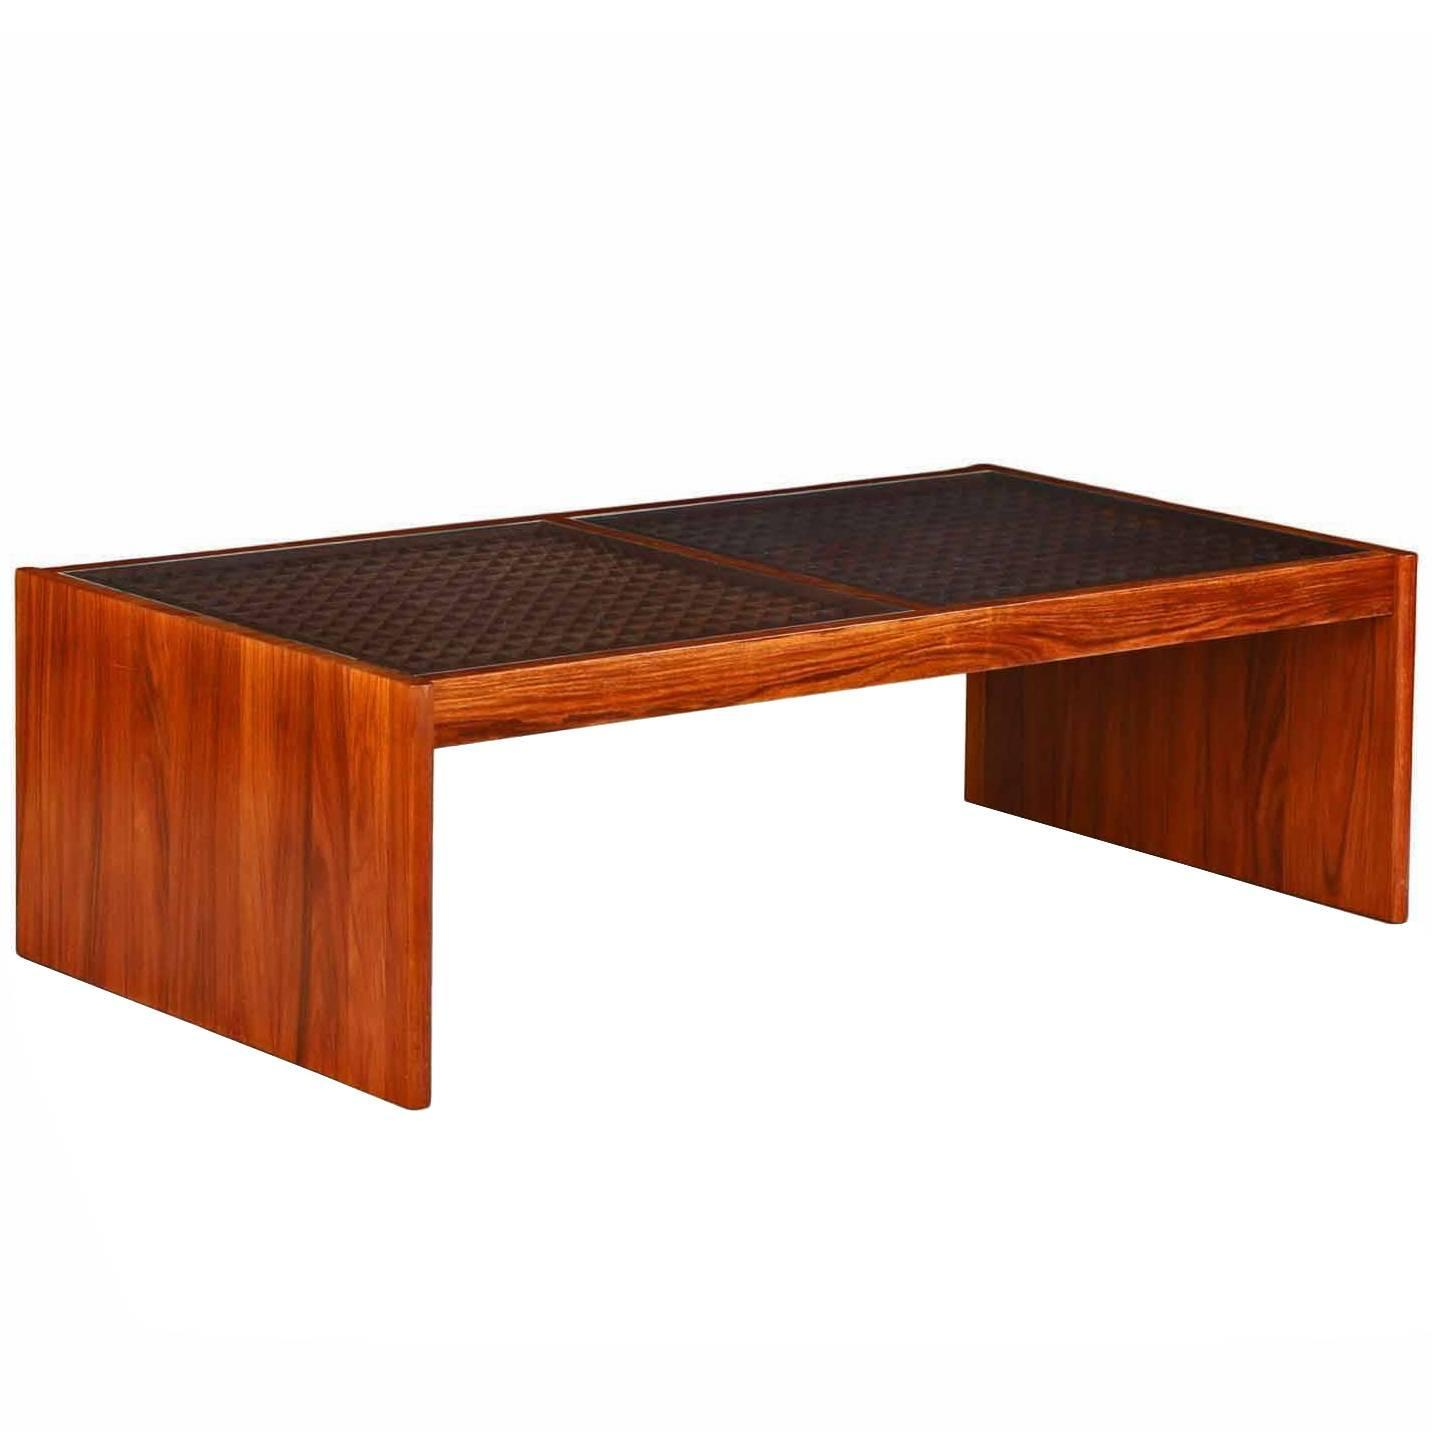 Danish Mid Century Modern Rosewood Latticework Coffee Table by